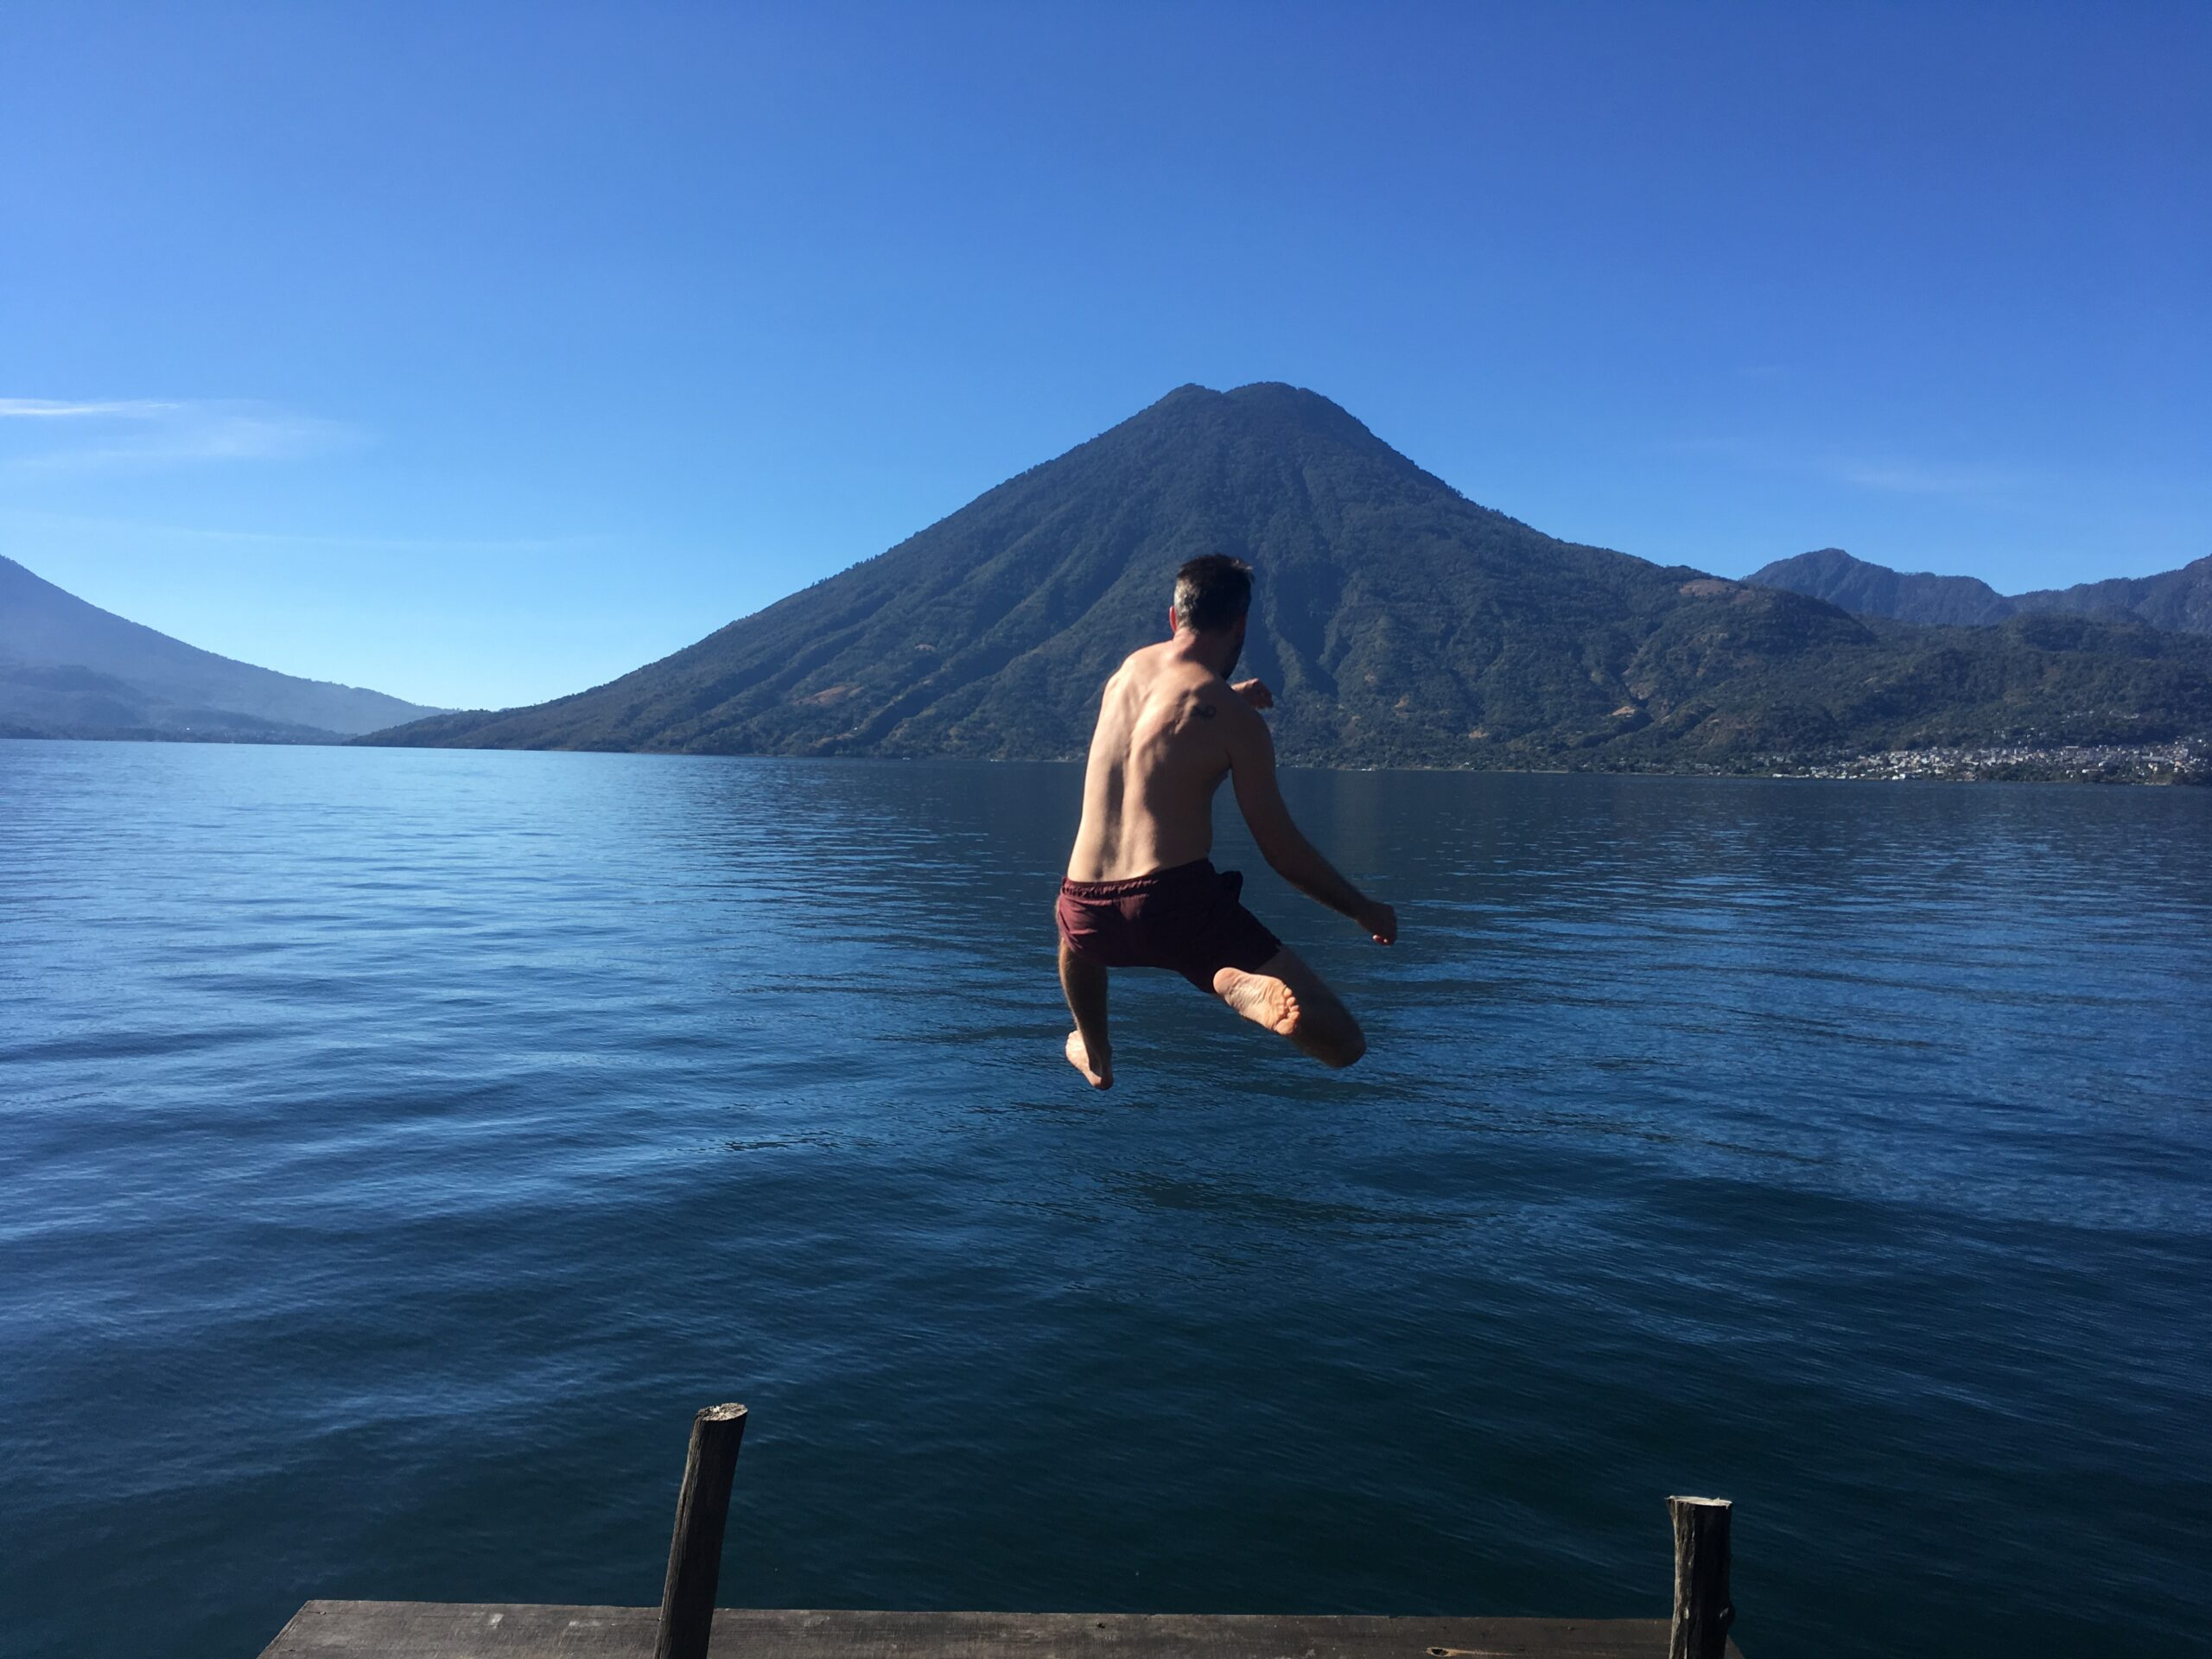 Person jumping into water with volcano in the back at lake atitlan